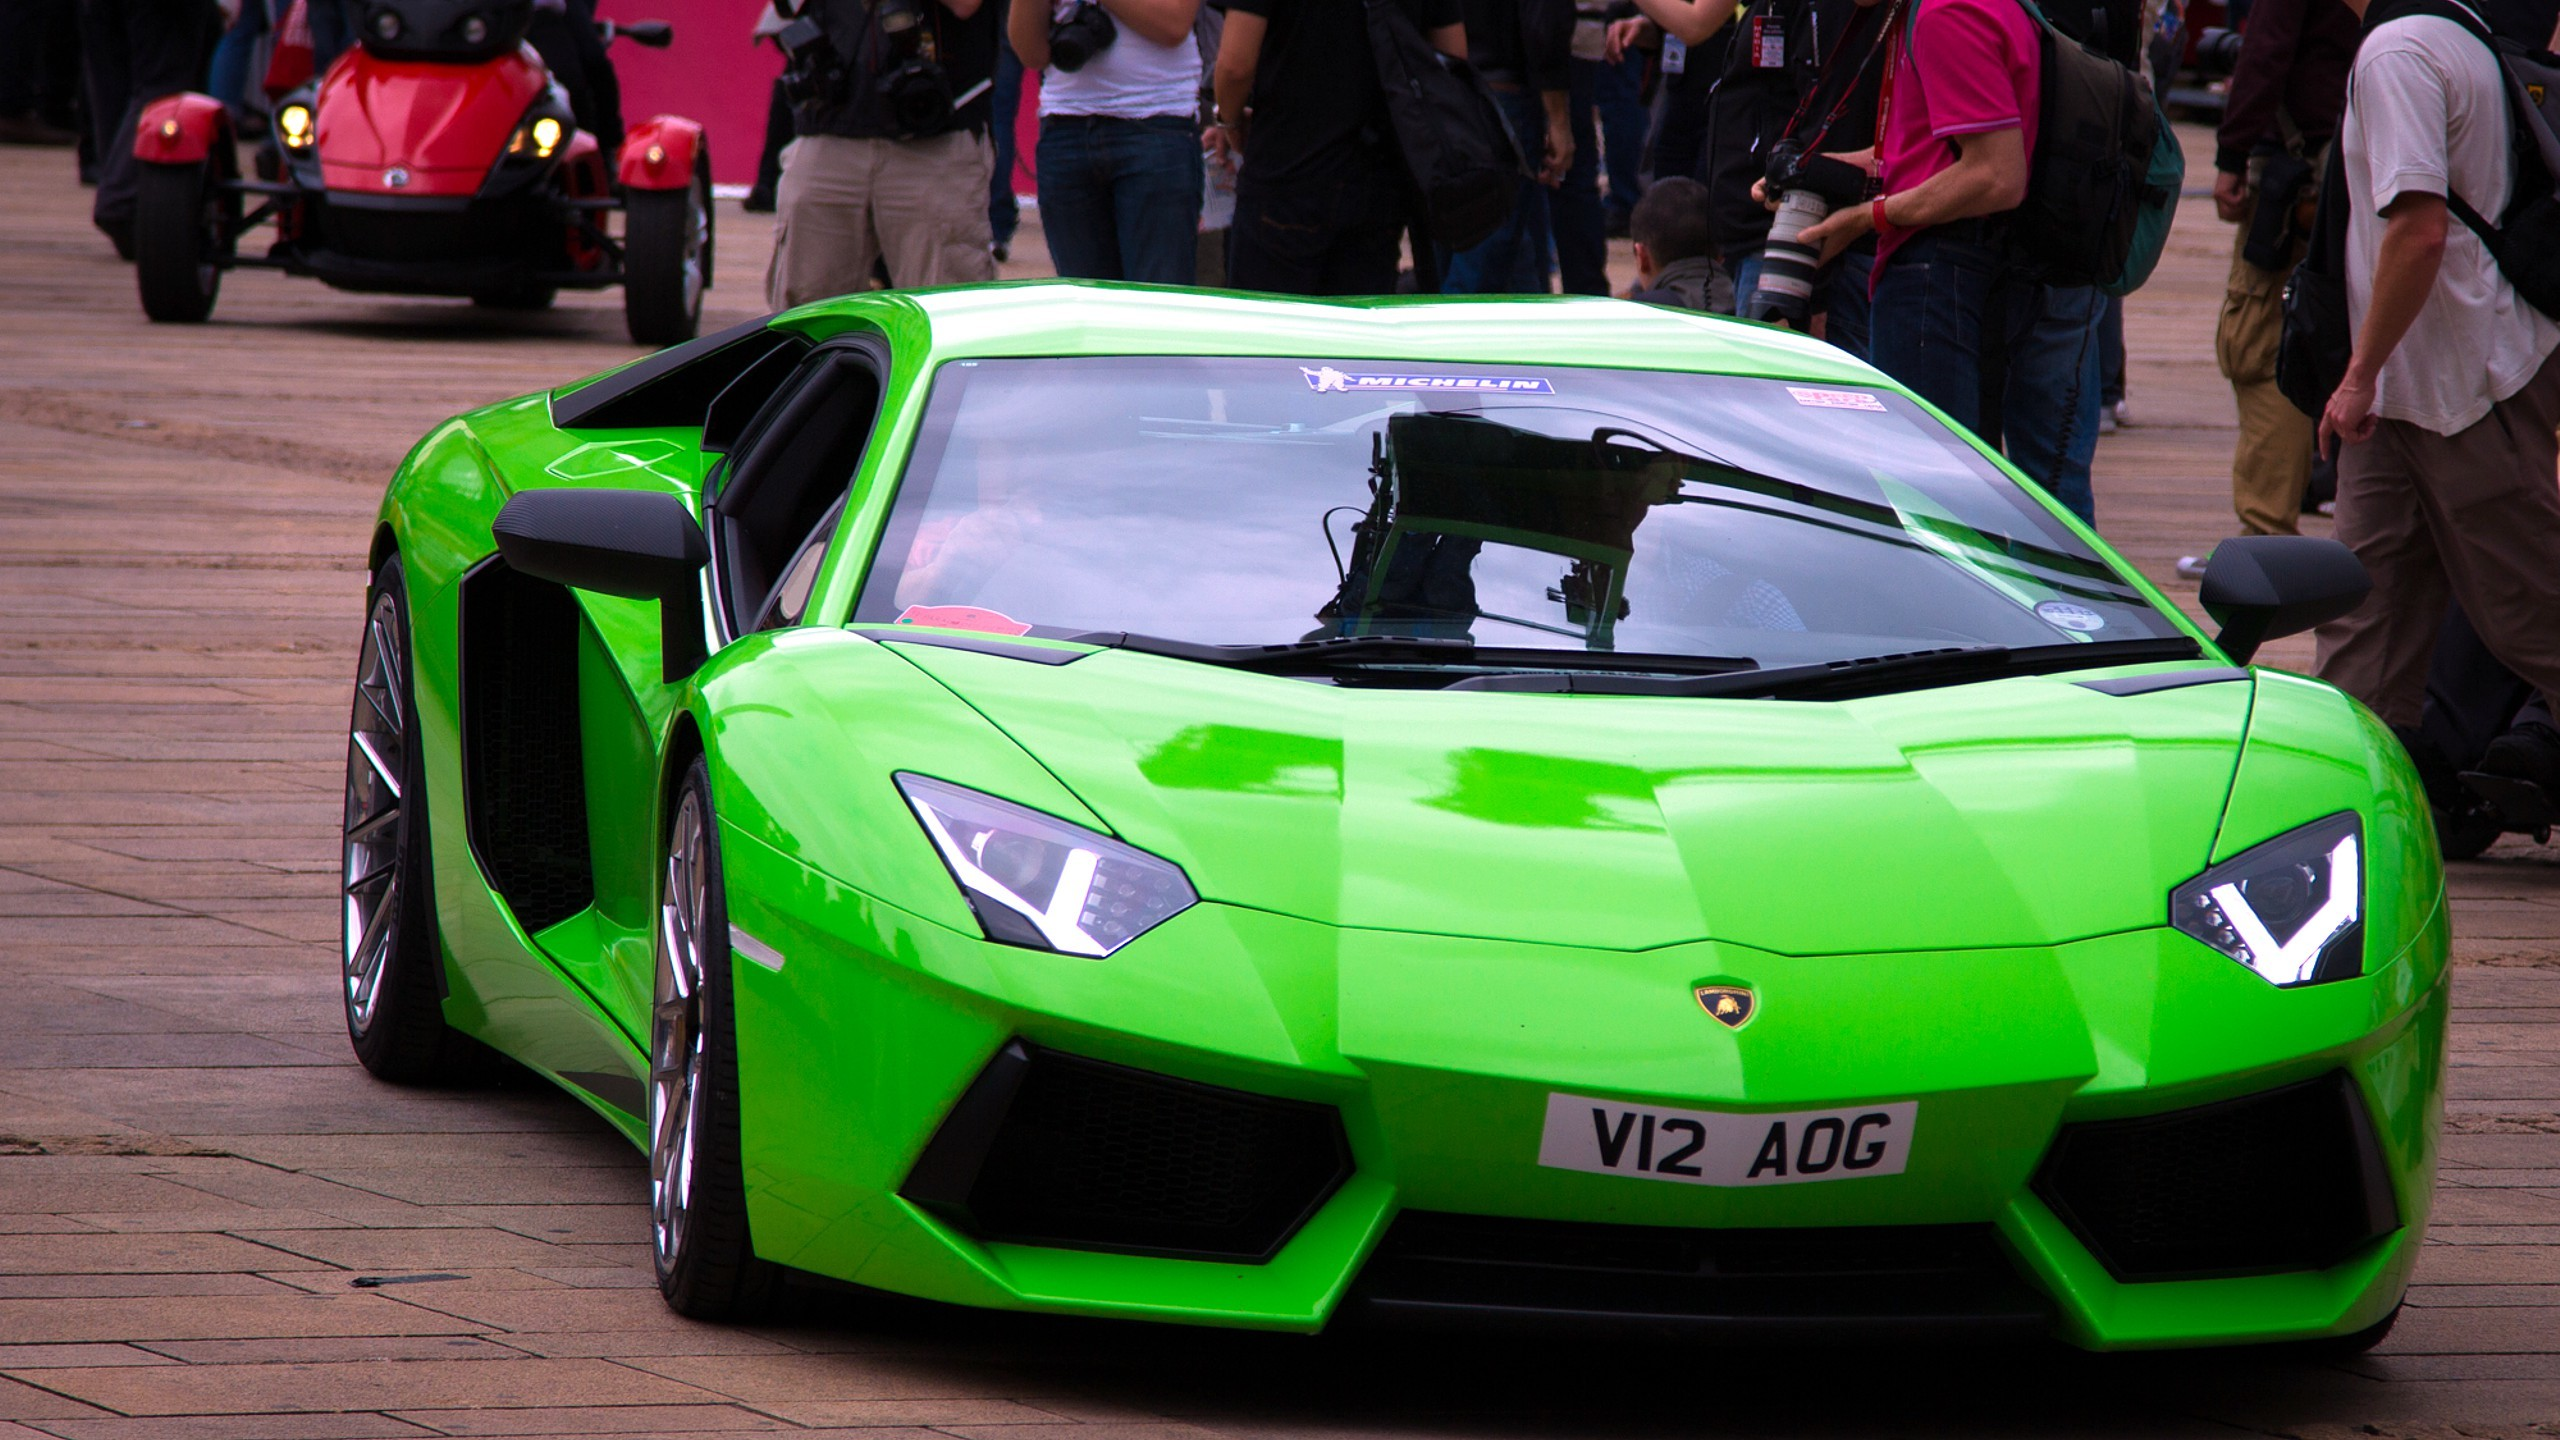 2560x1440 ... wallpapers lamborghini aventador car pictures pc ...